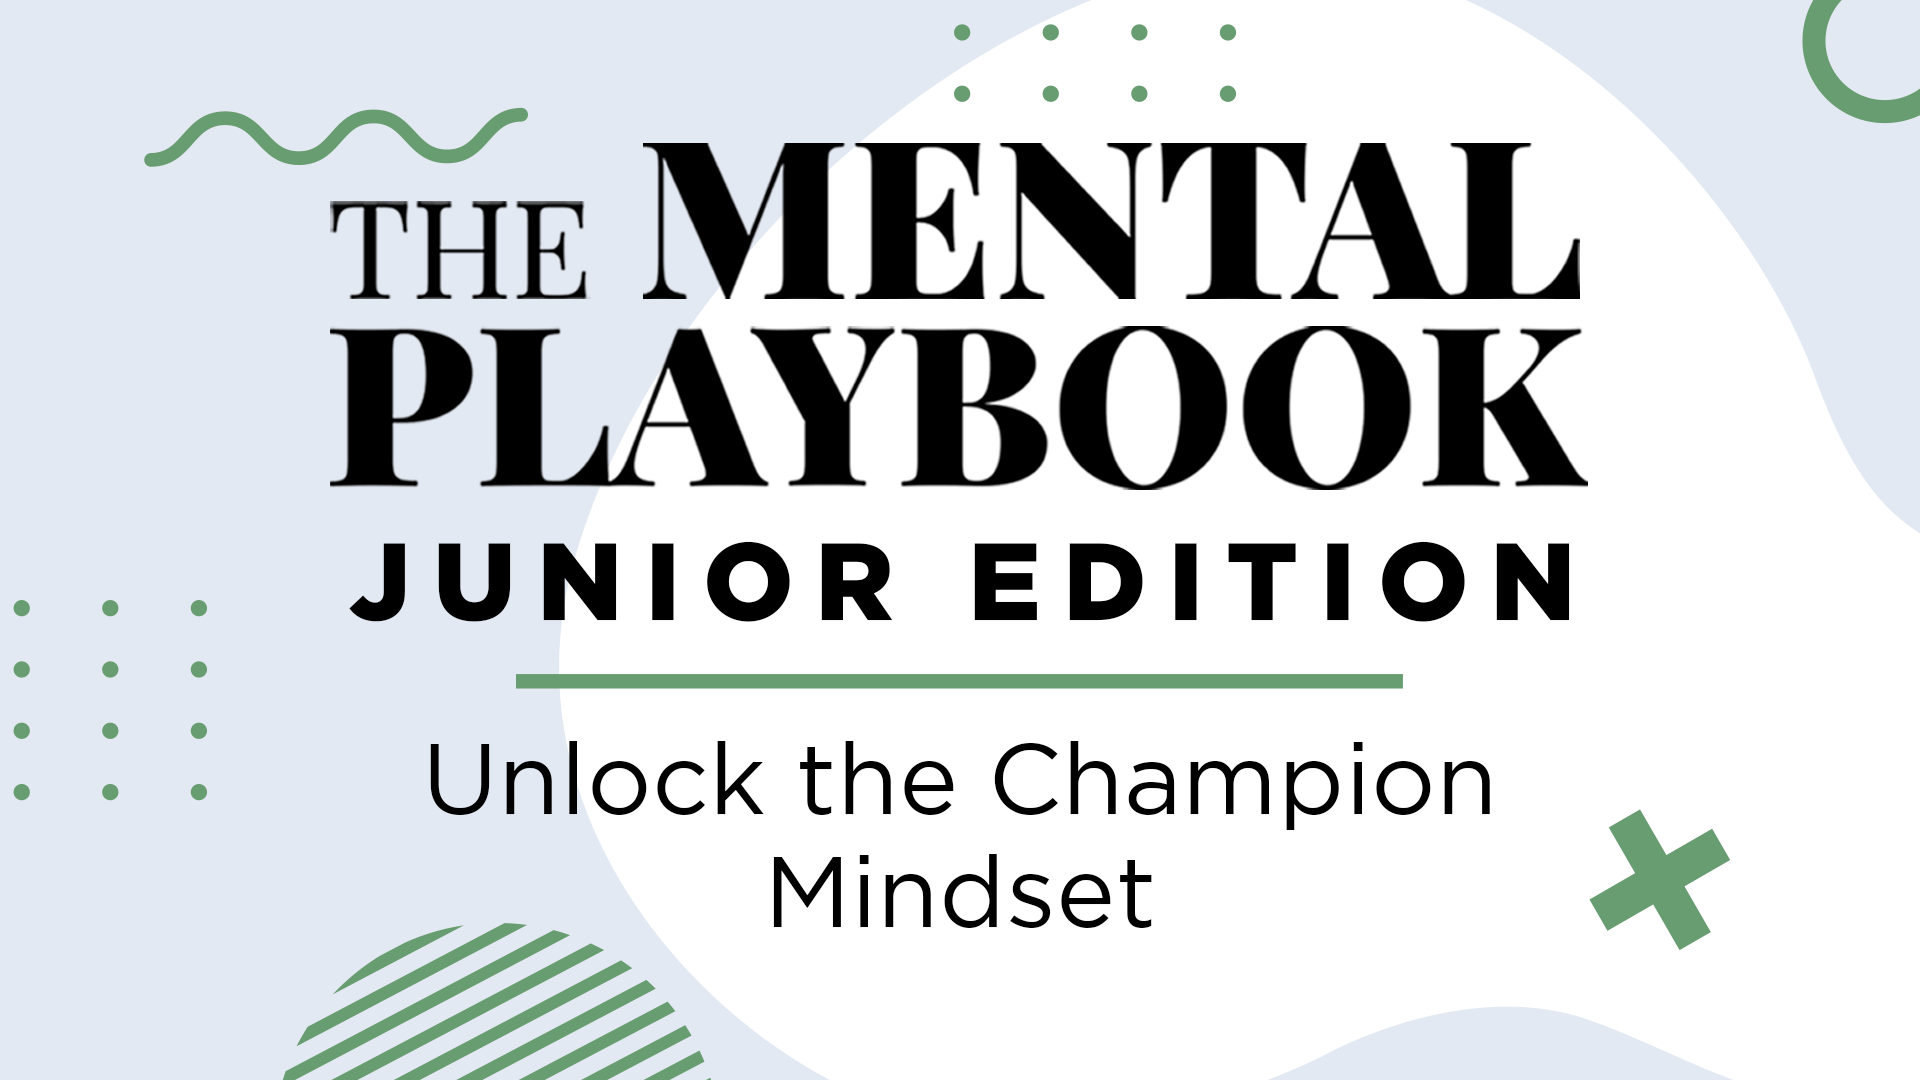 The Mental Playbook Junior Edition